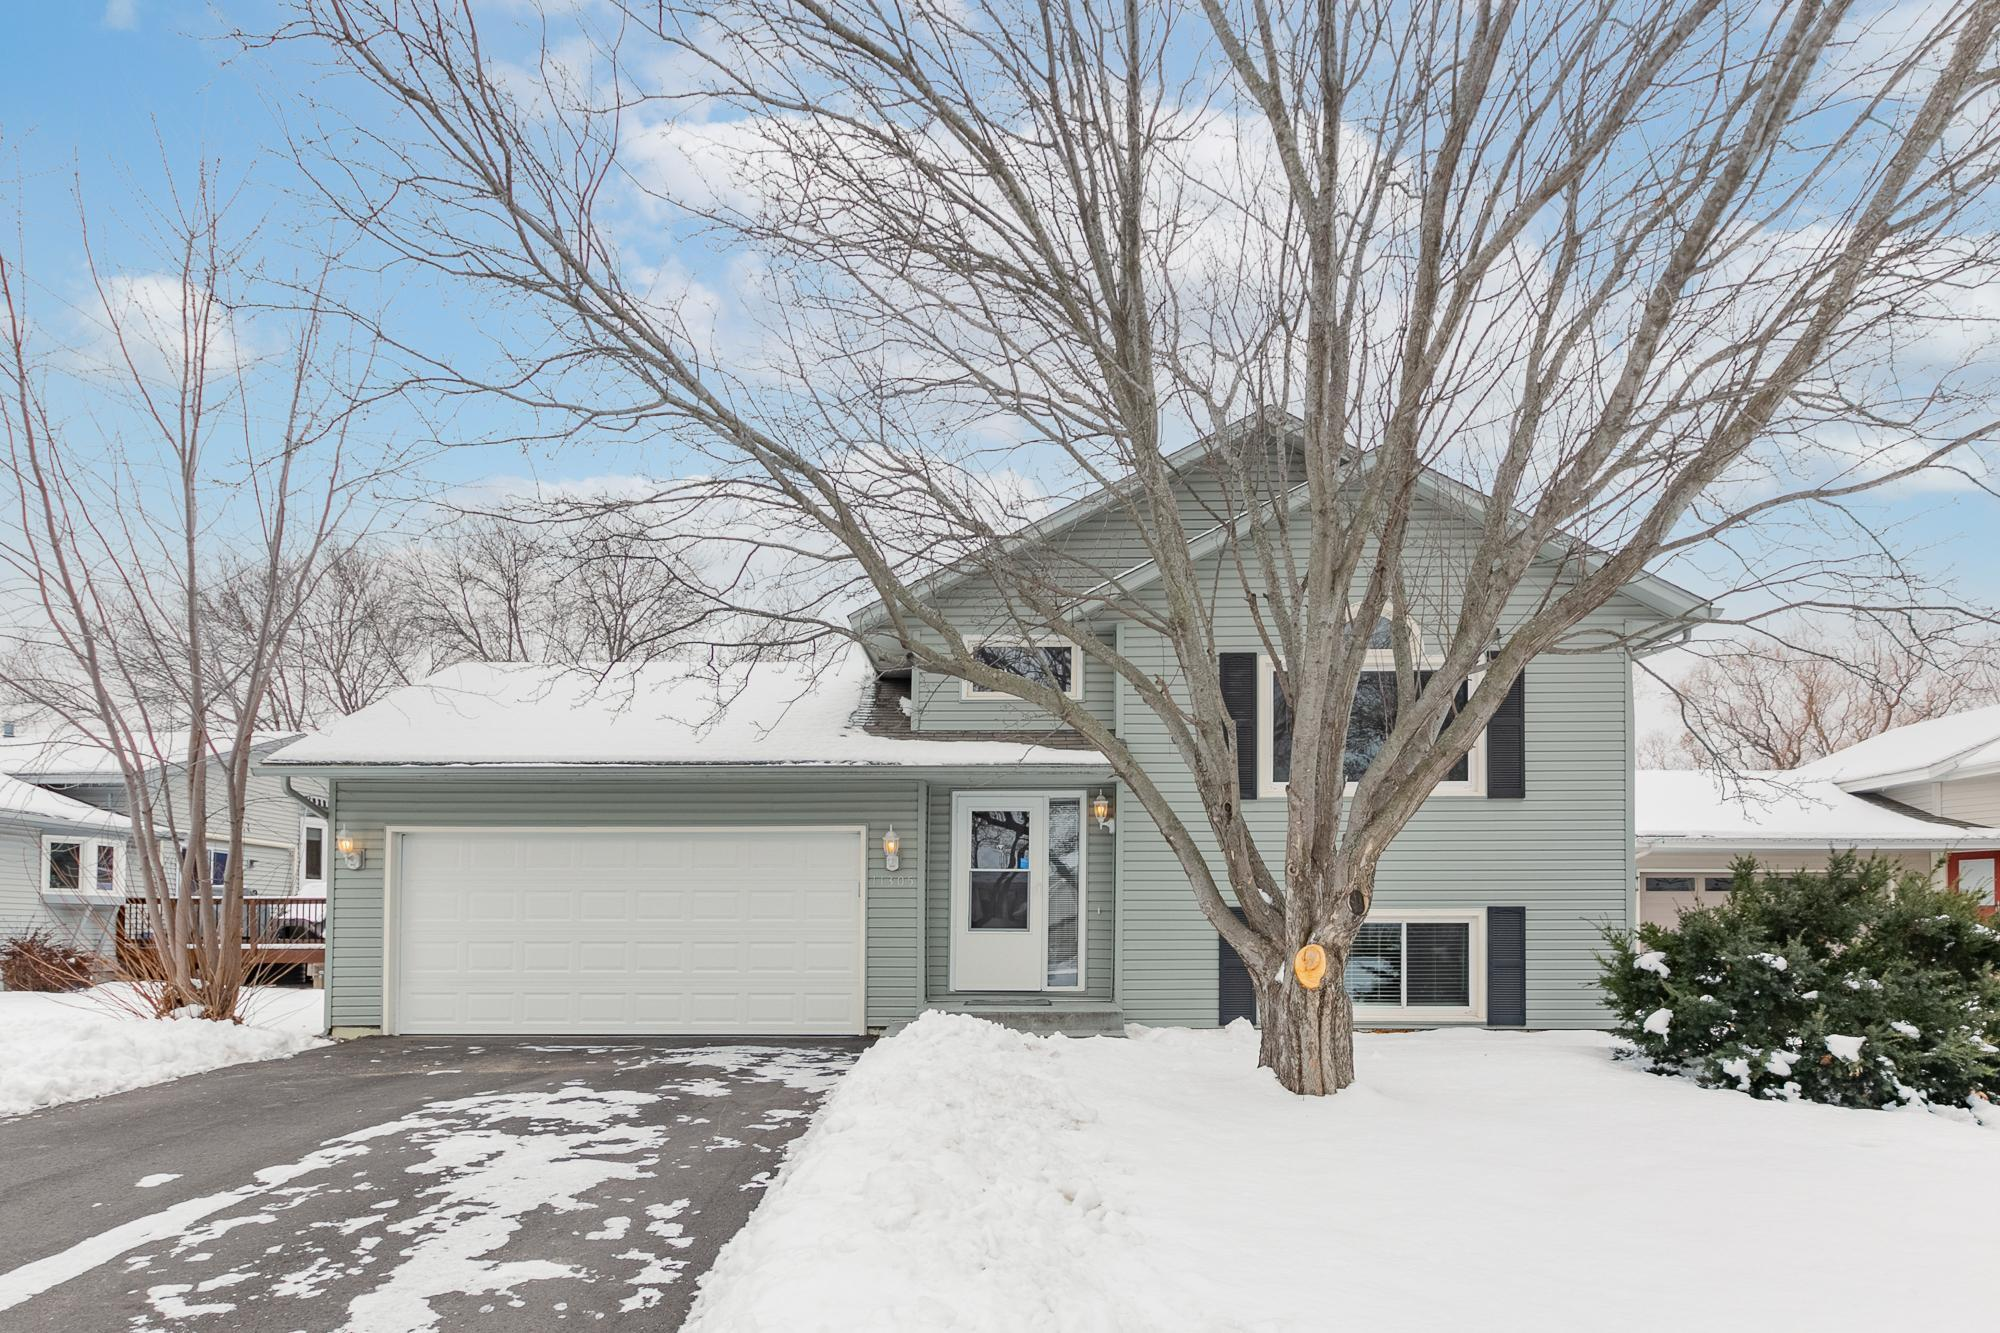 11305 48th Avenue N Property Photo - Plymouth, MN real estate listing